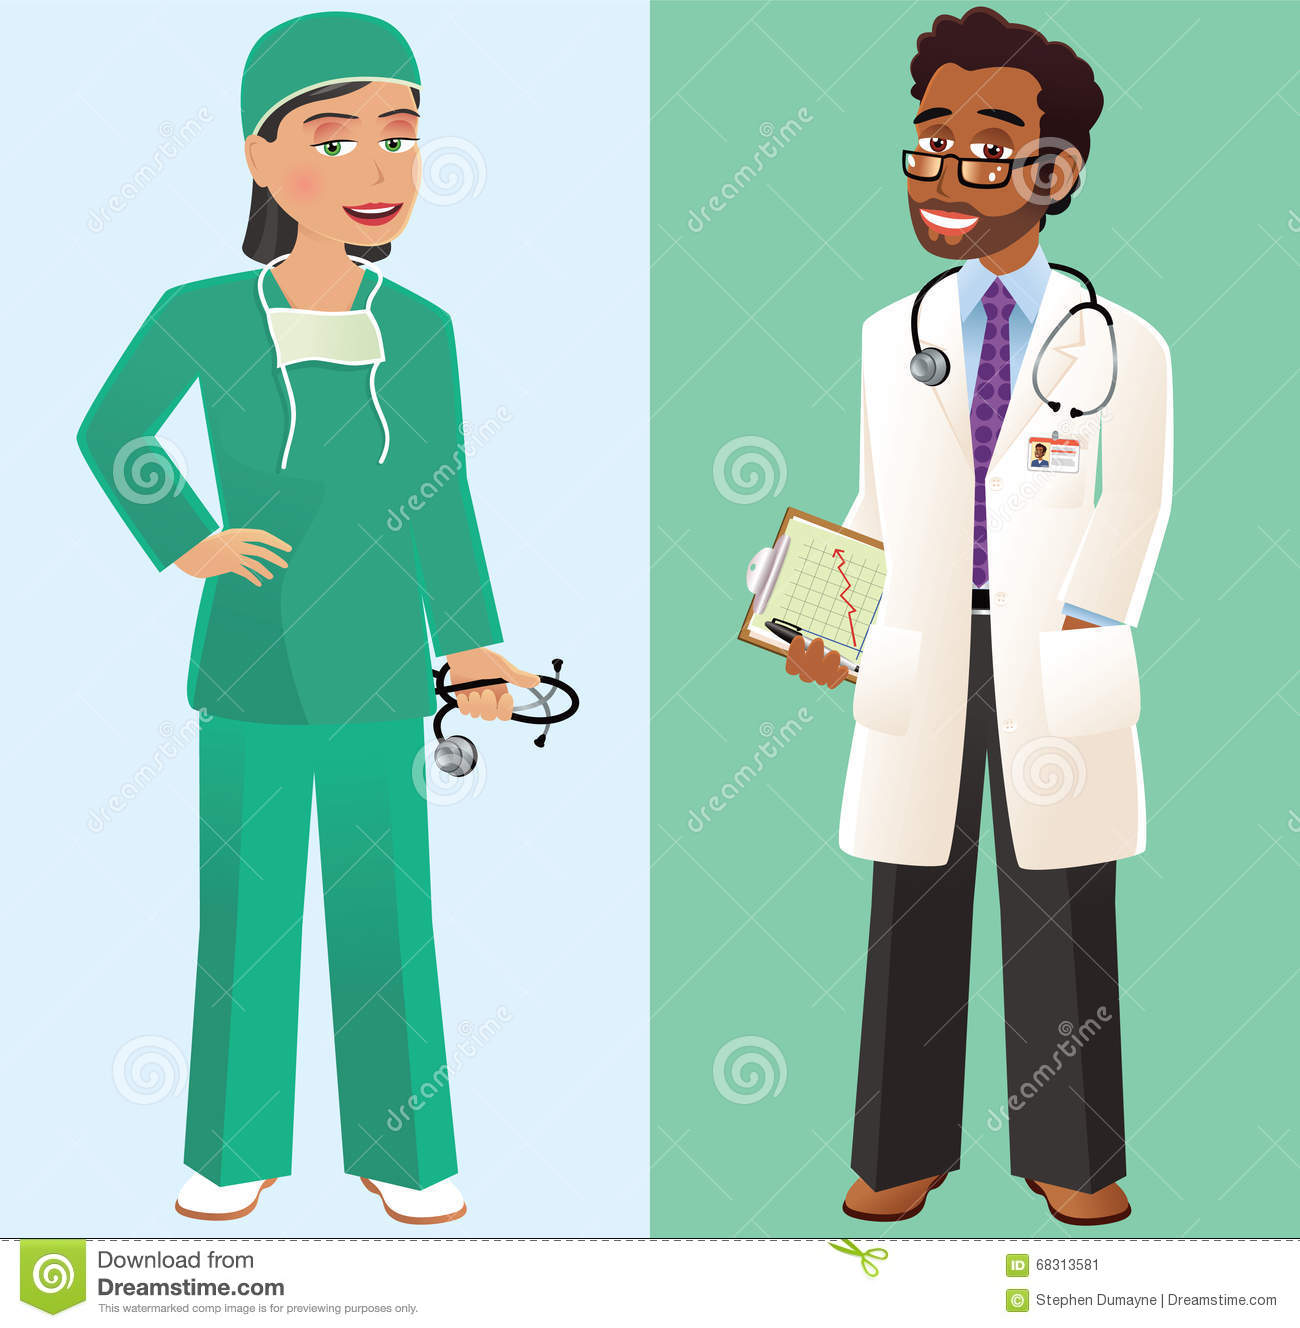 Doctor and surgeon stock vector  Illustration of people